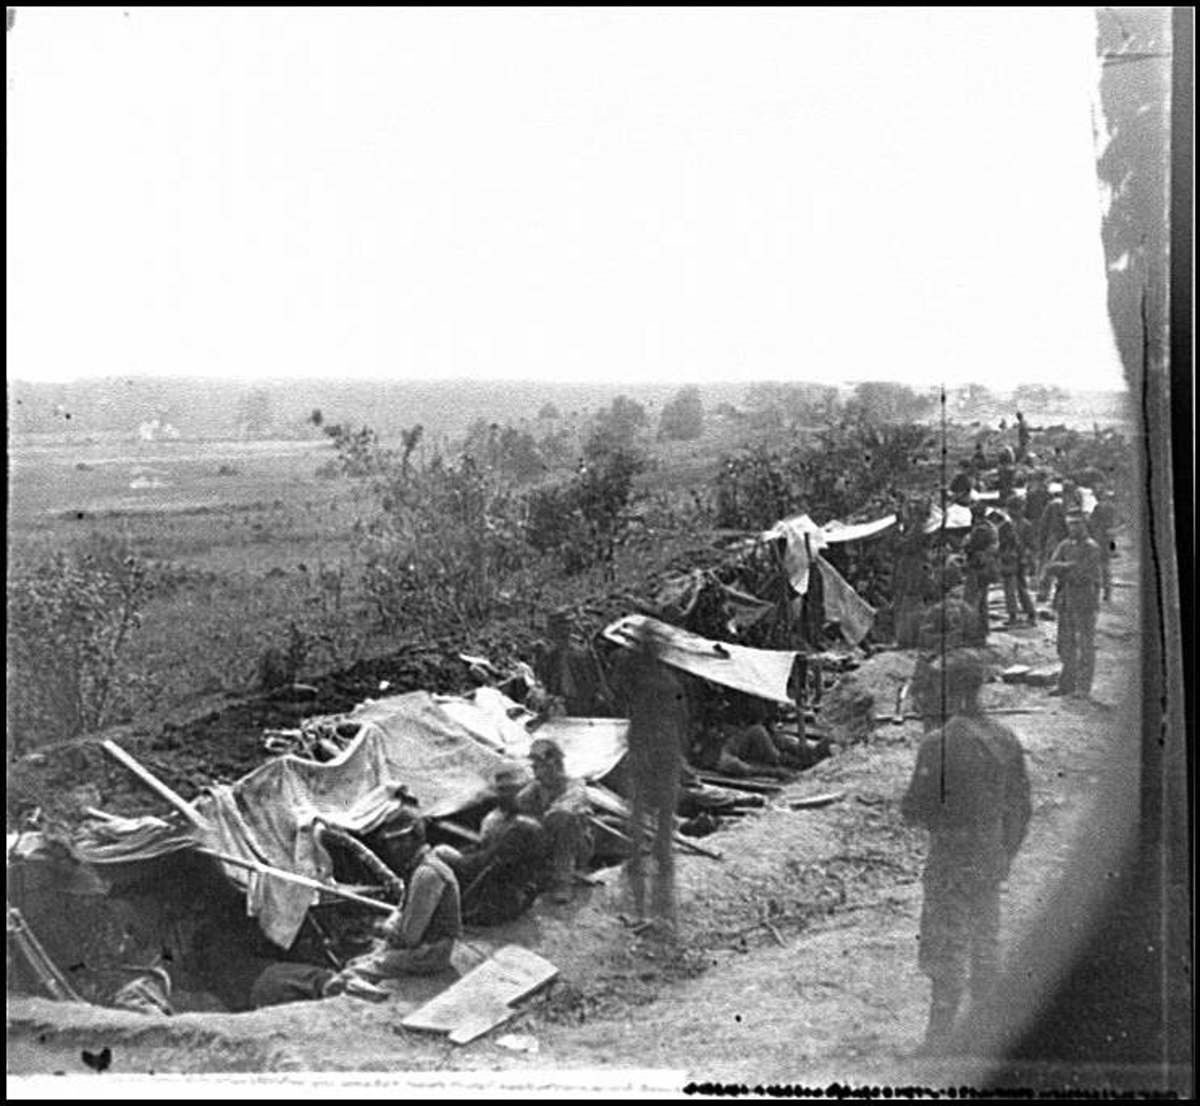 Union troops occupy a trench outside of Fredericksburg, VA